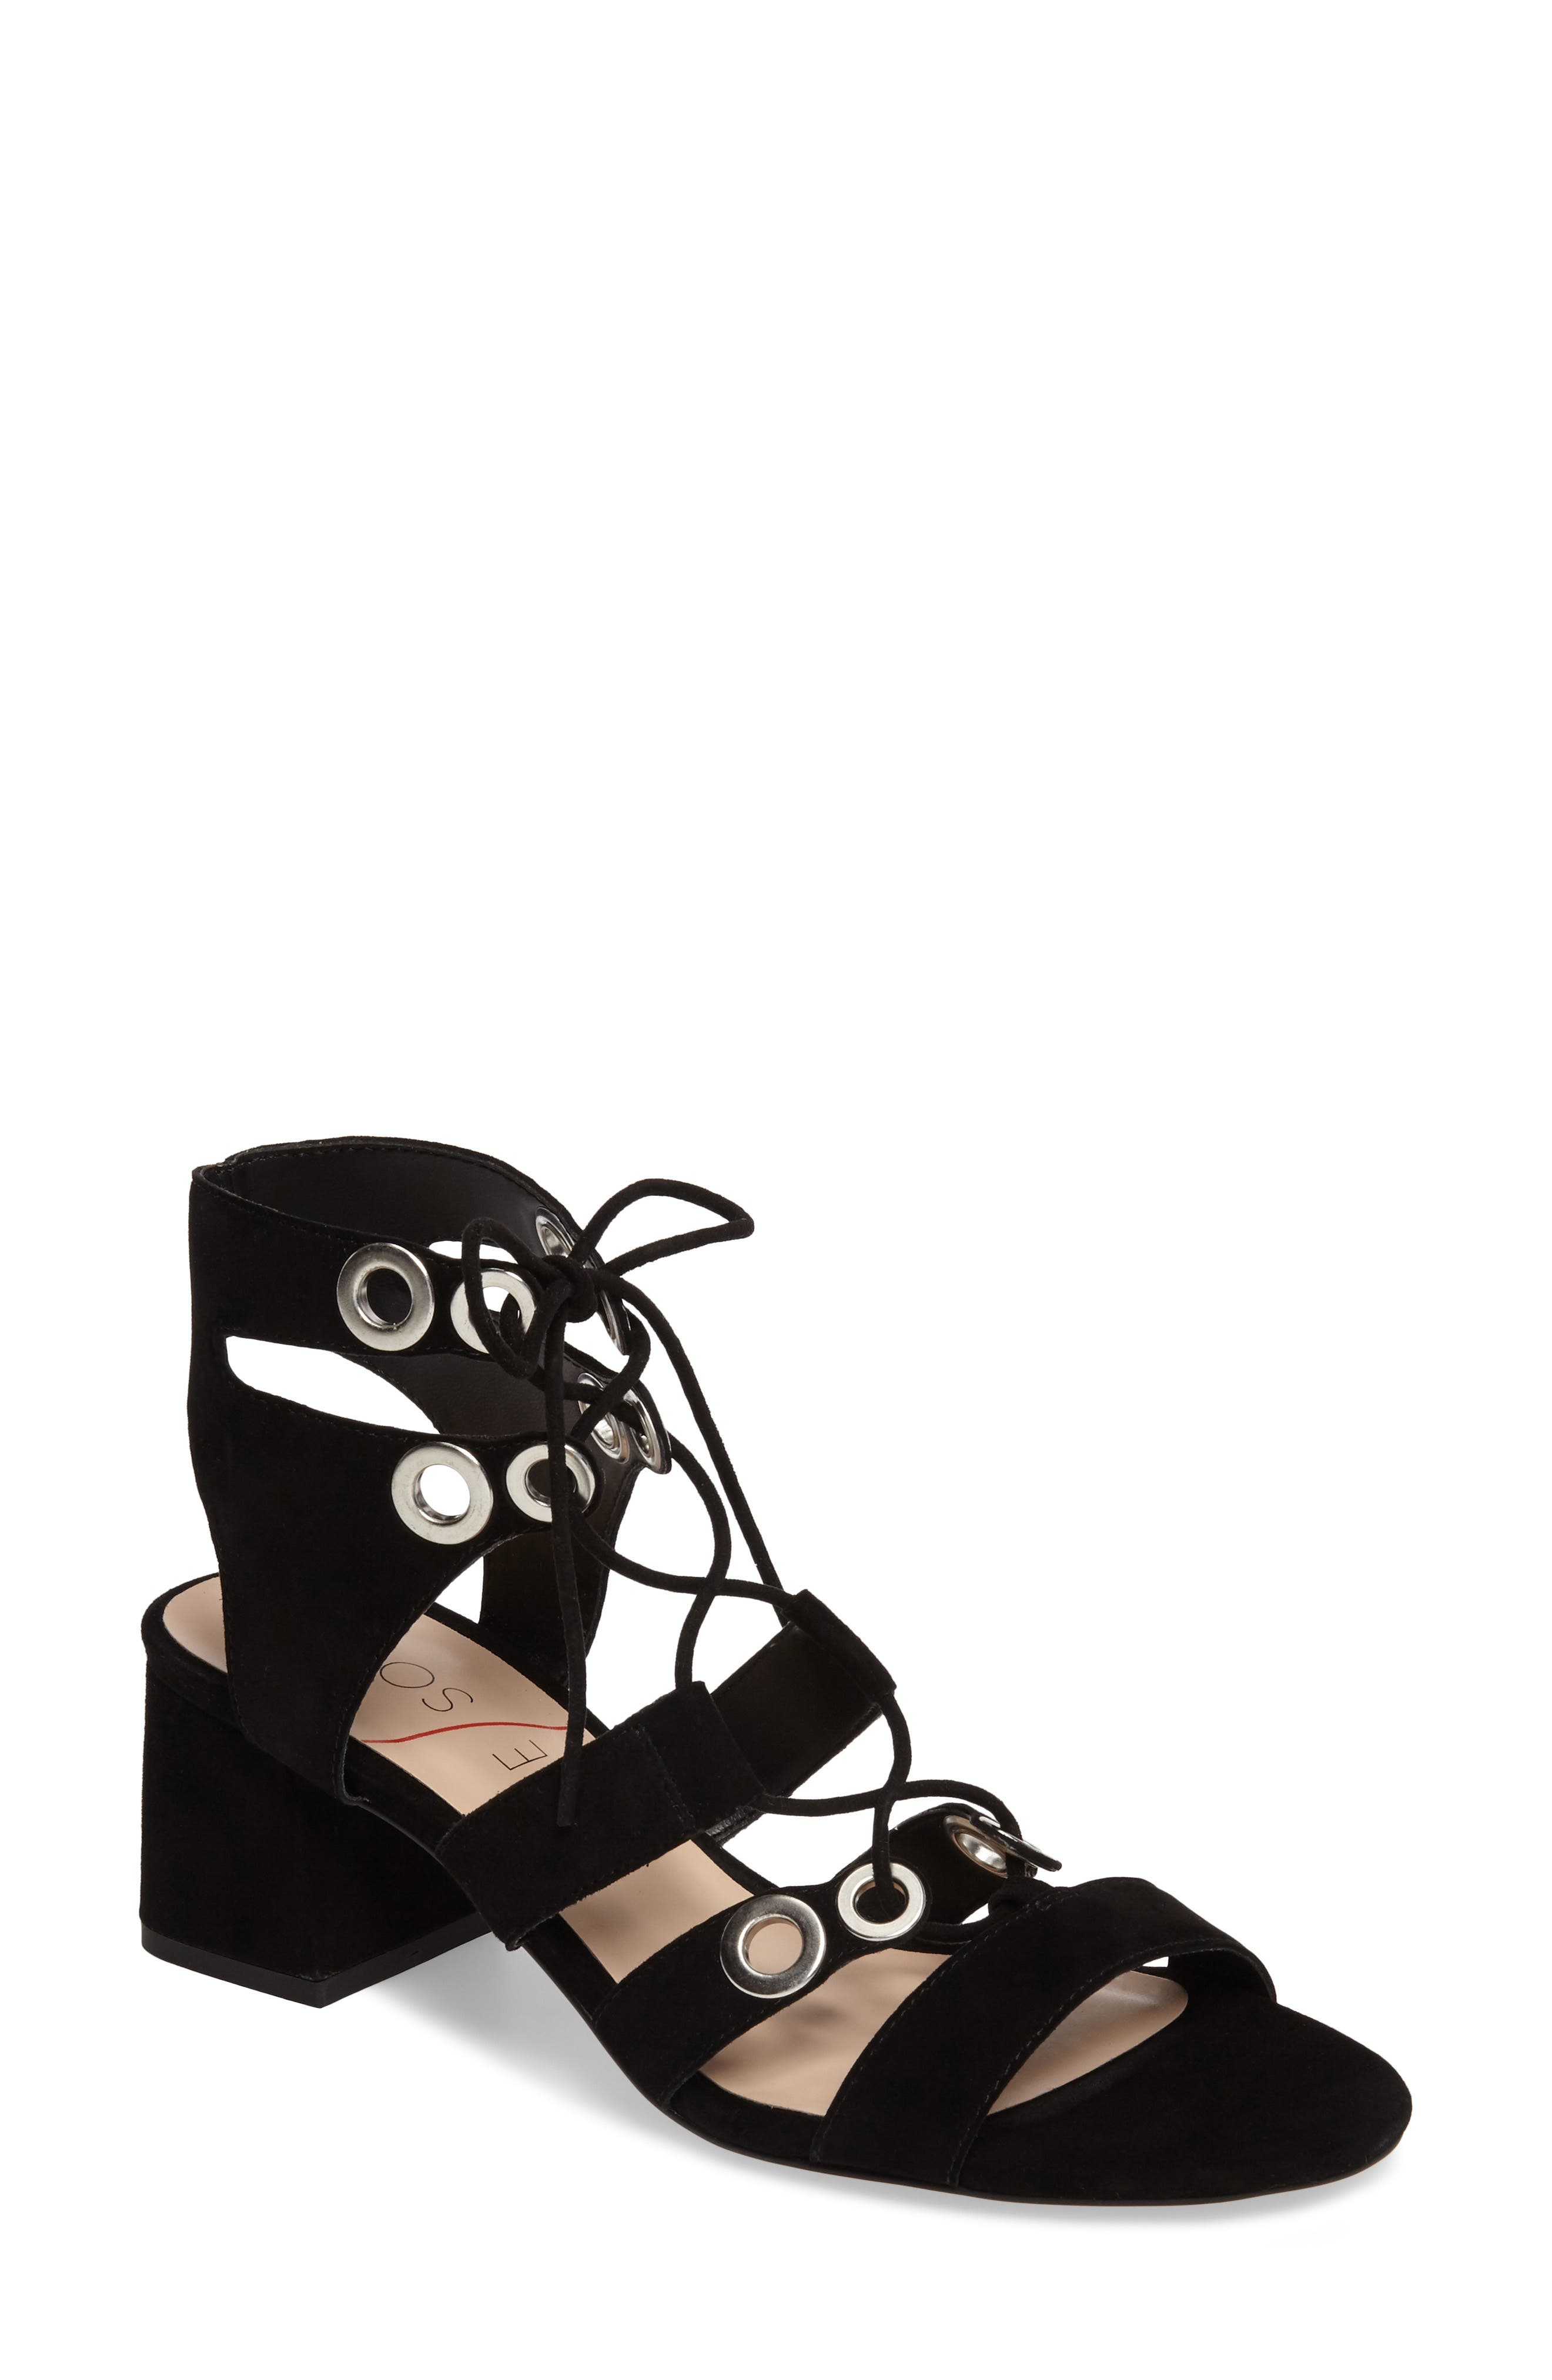 Rosemary Lace-Up Sandal,                         Main,                         color, 003